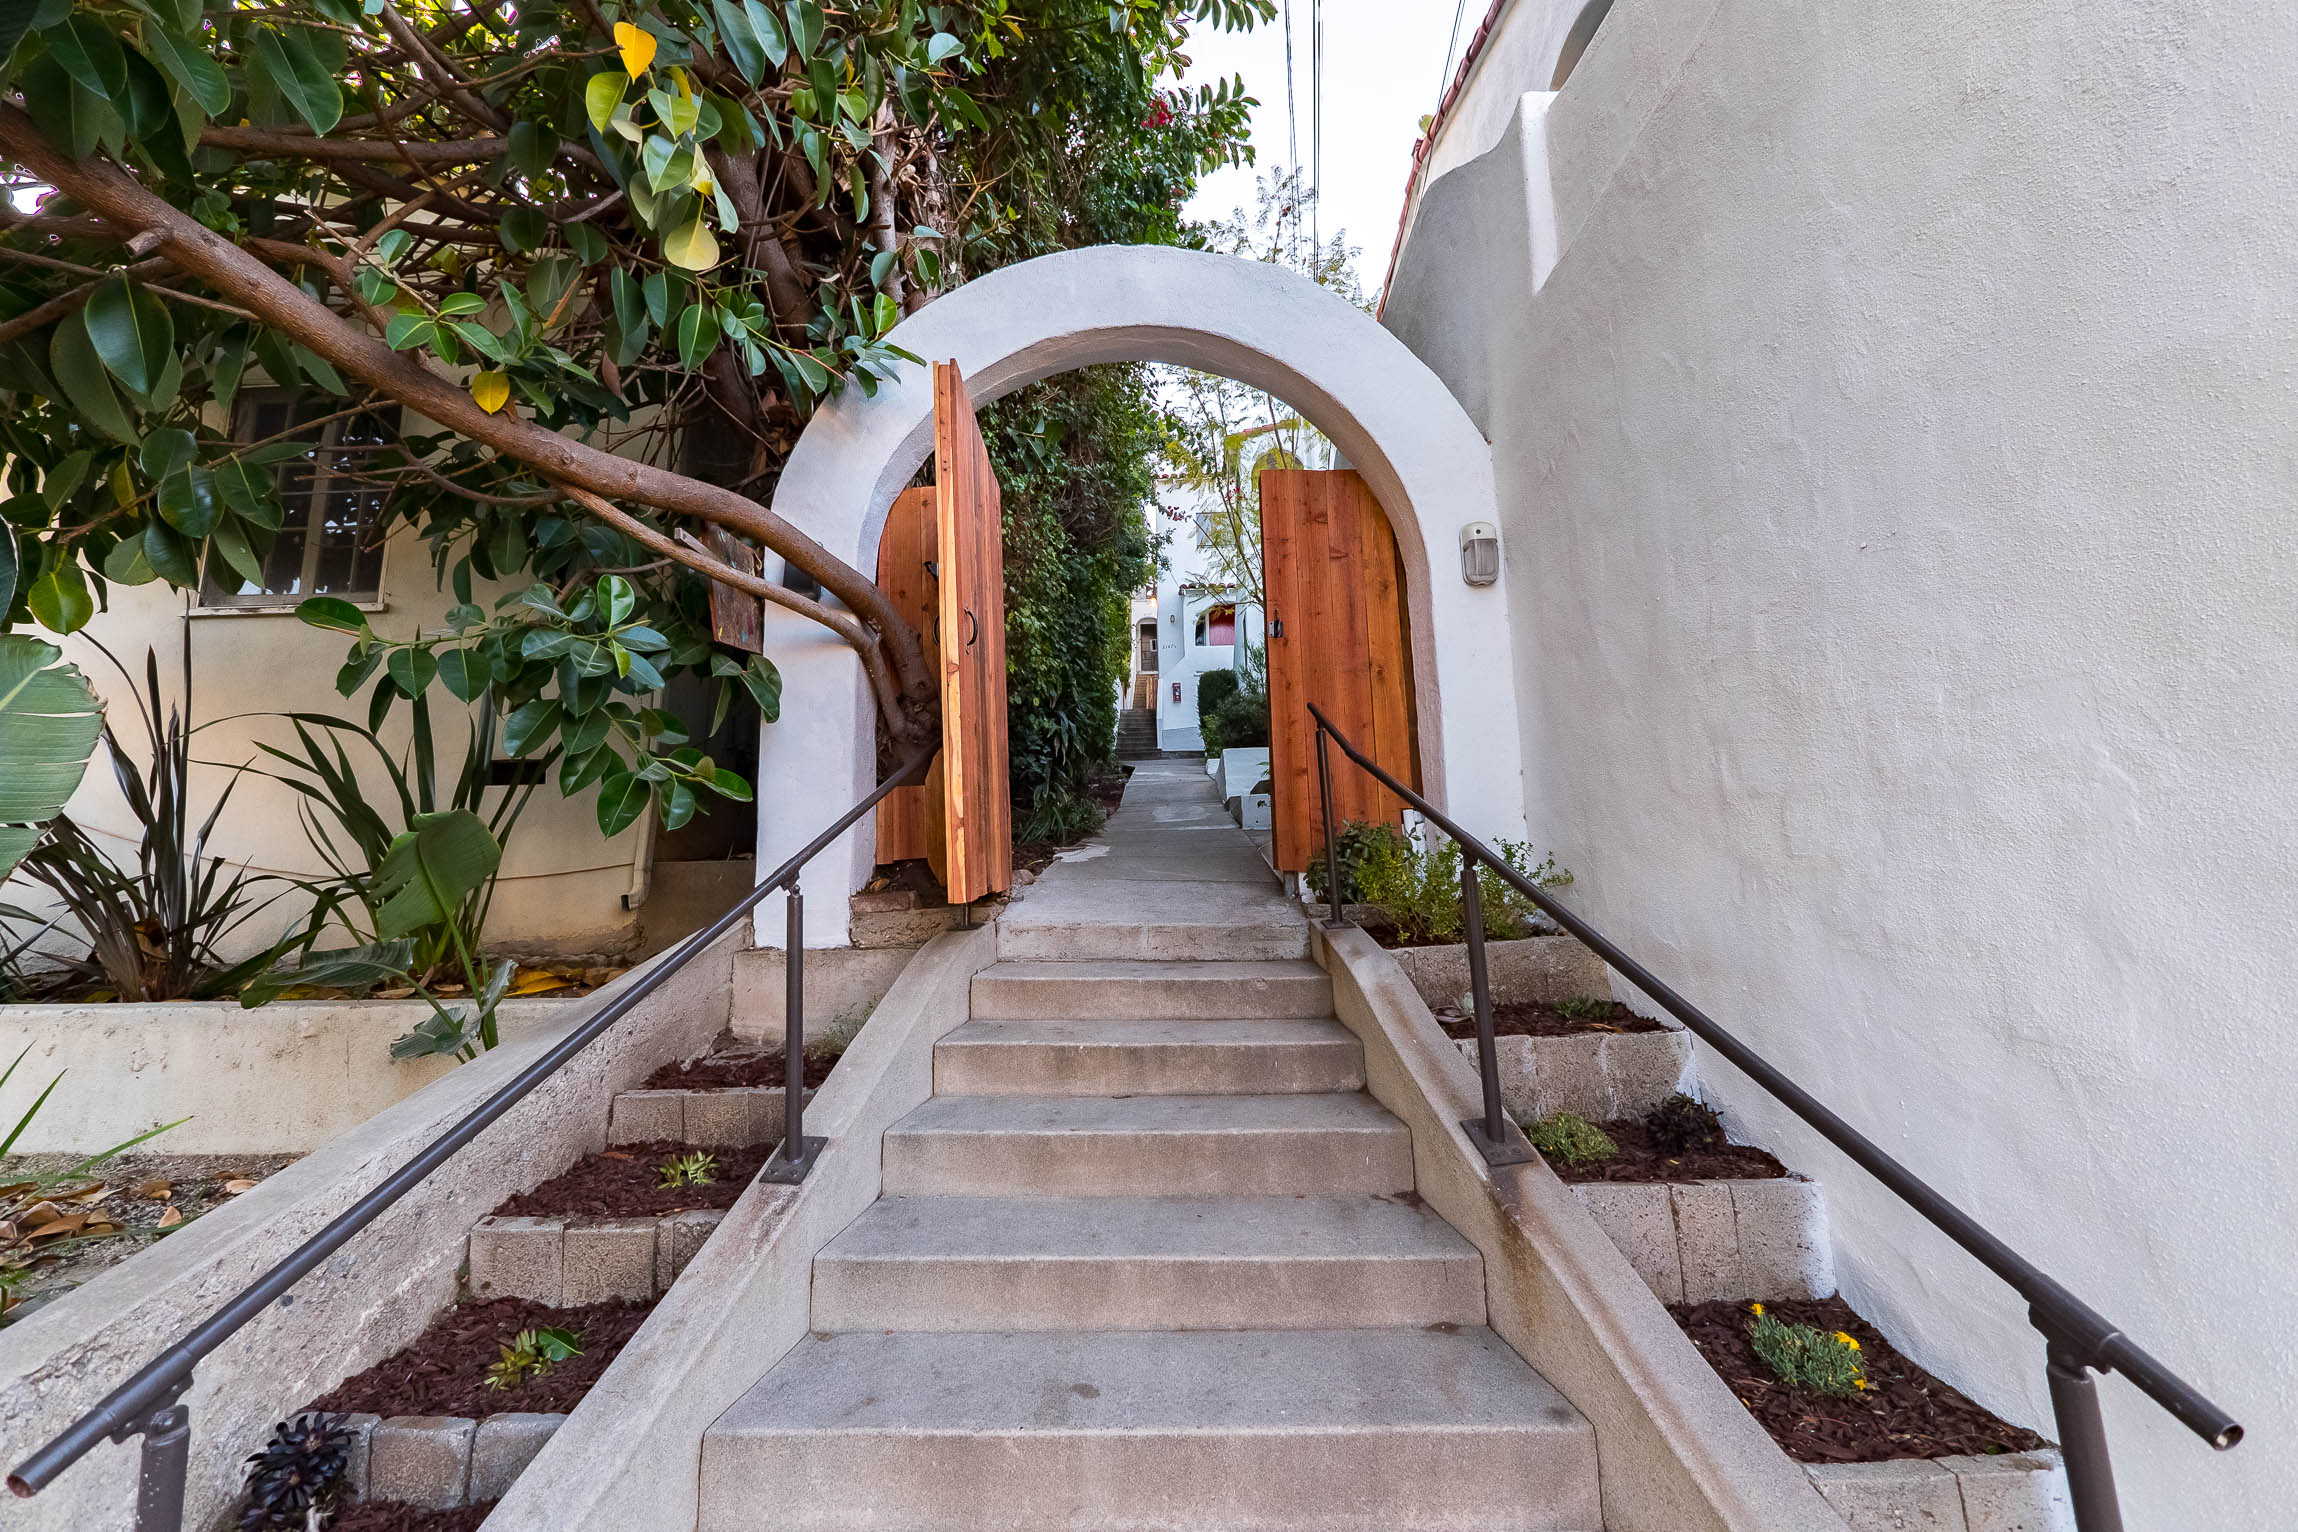 An incredible an rare opportunity to own a small slice of heaven in Echo Park!